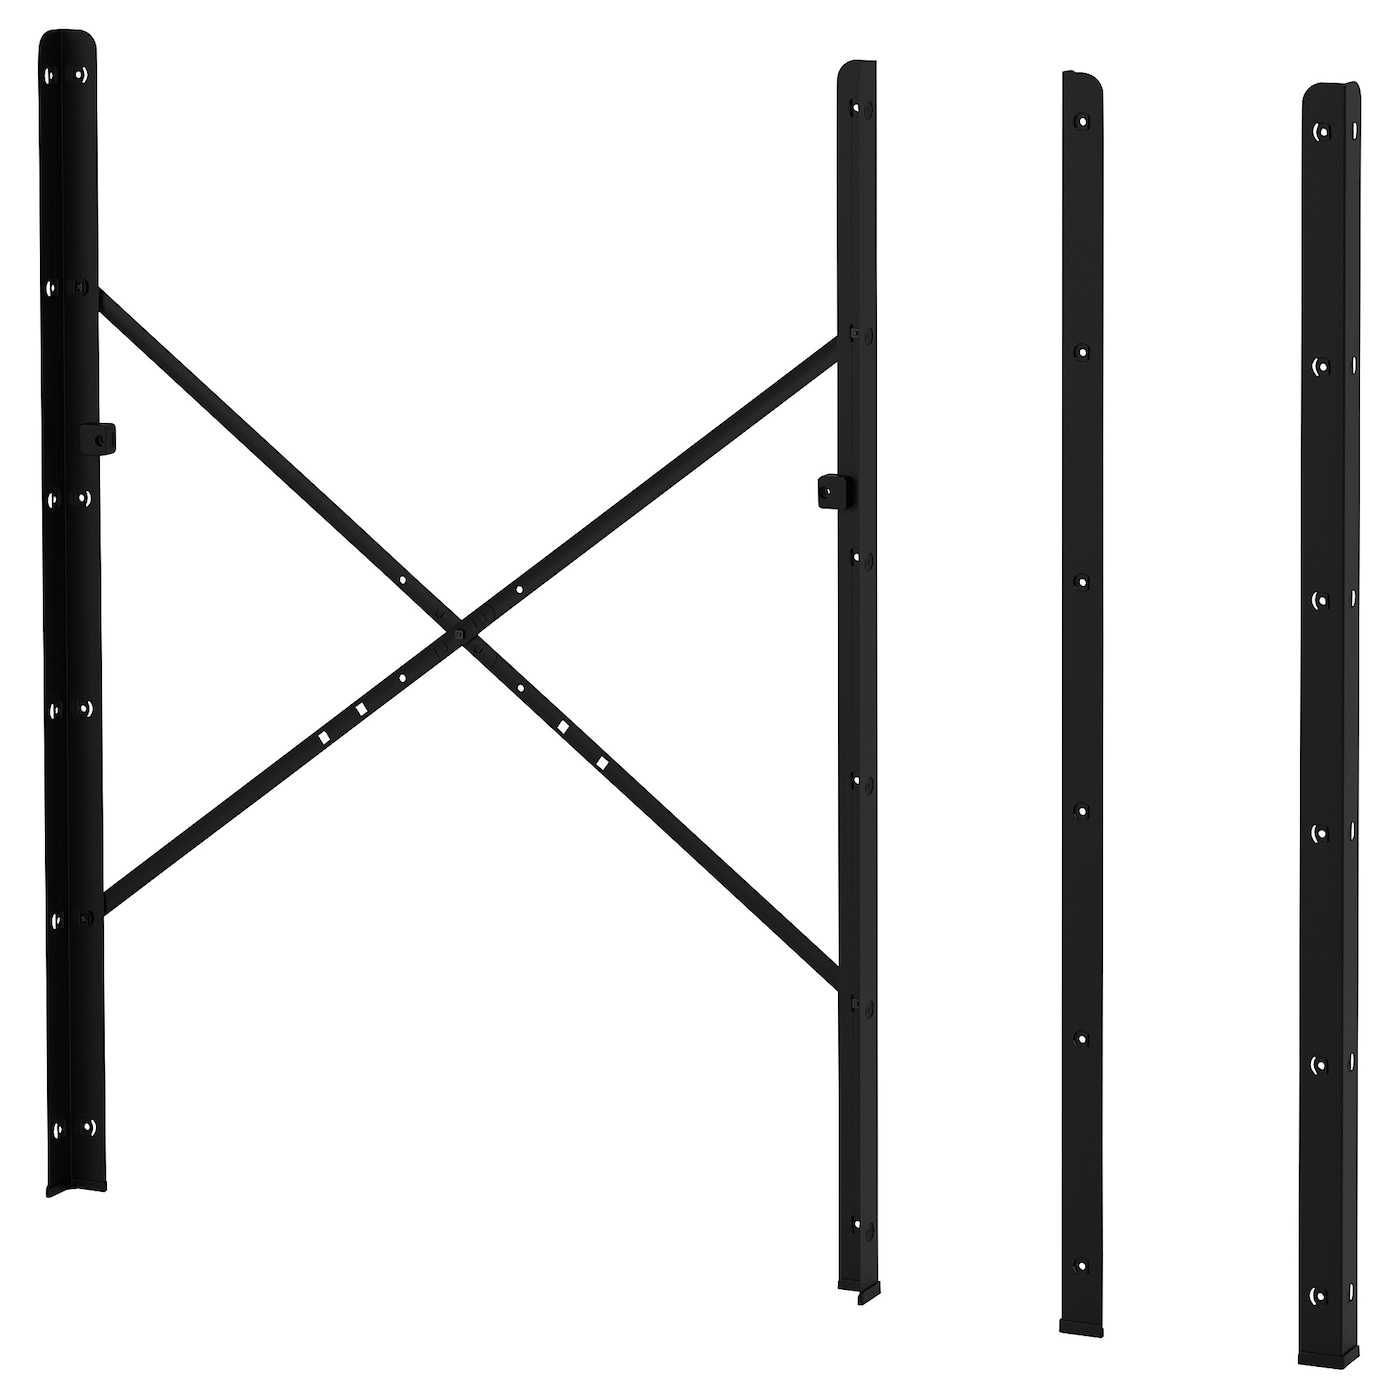 IKEA BROR post Can be used in damp areas indoors.